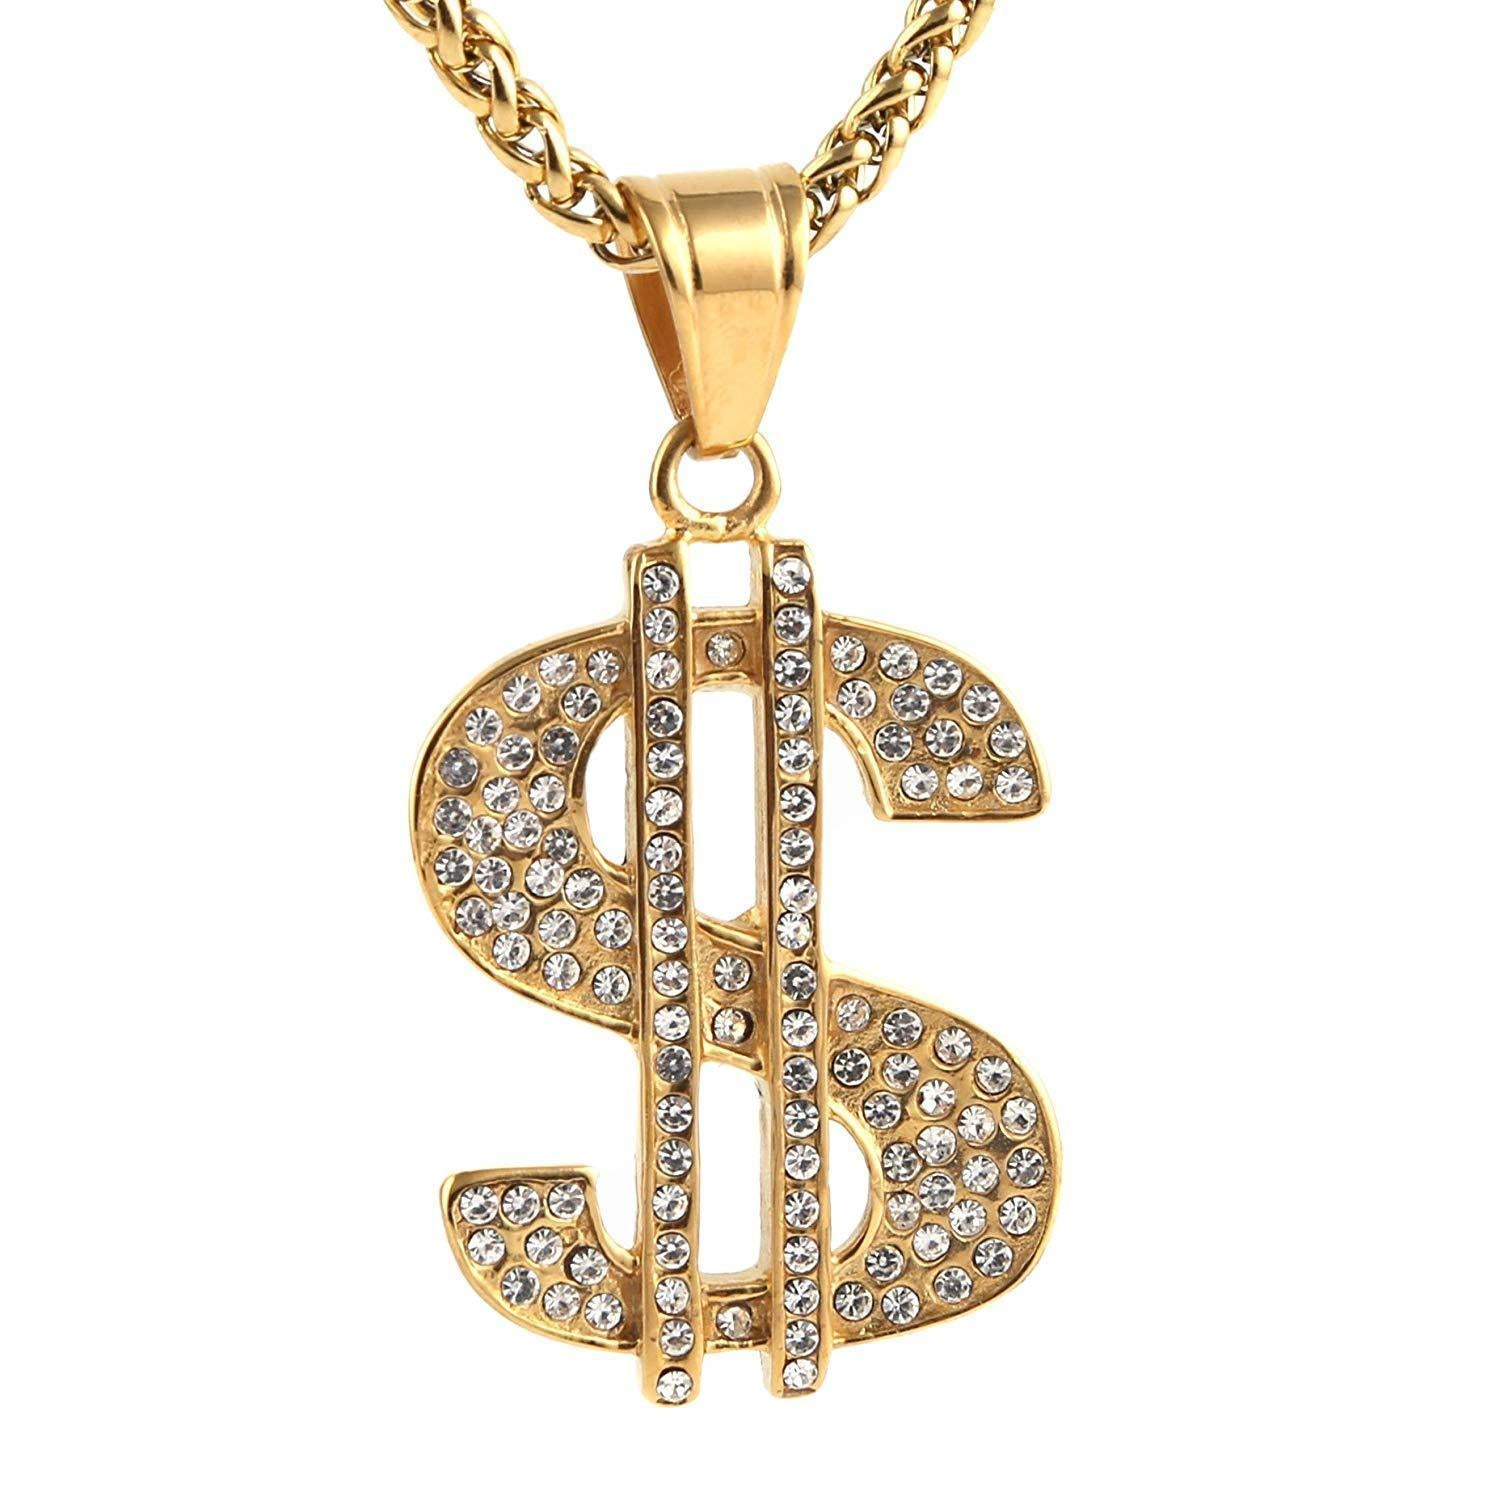 HZMAN Mens Gold Plated Dollar Sign Stainless Steel Pendant Necklace,Cz Inlay,with Free Hip hop Chain 24""